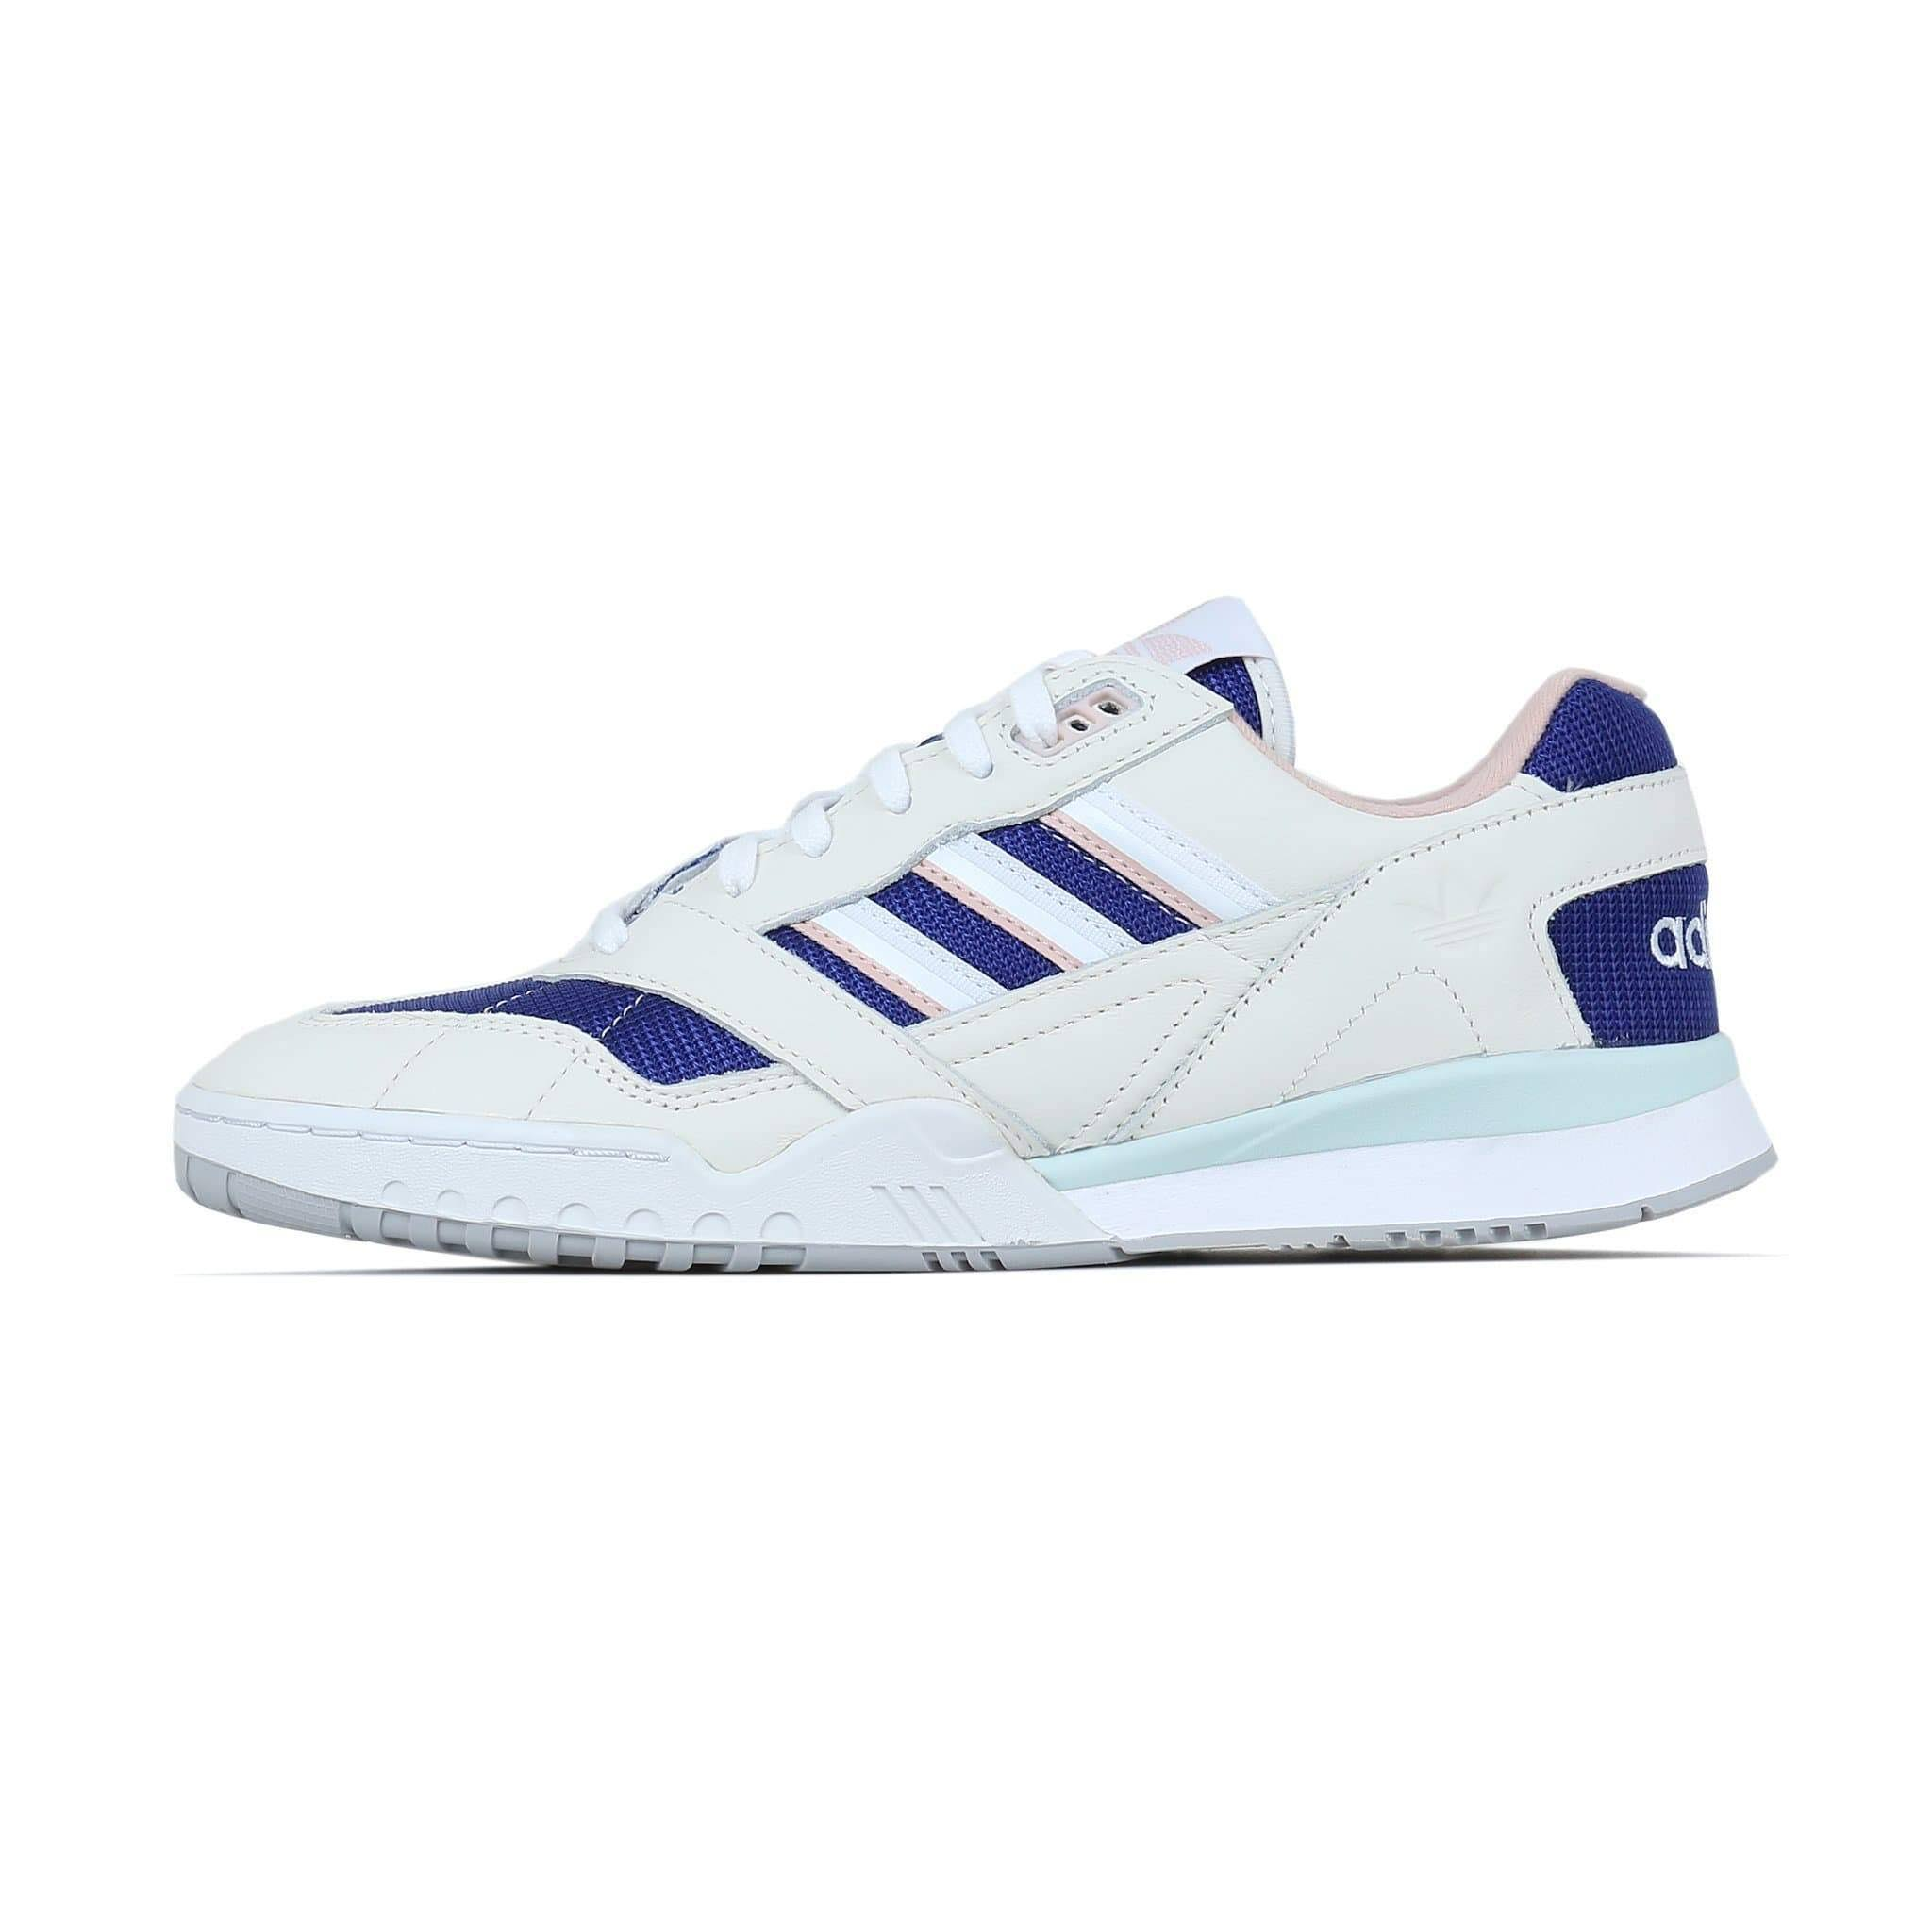 Adidas Originals A R Trainer Shoes - Off White Real Purple